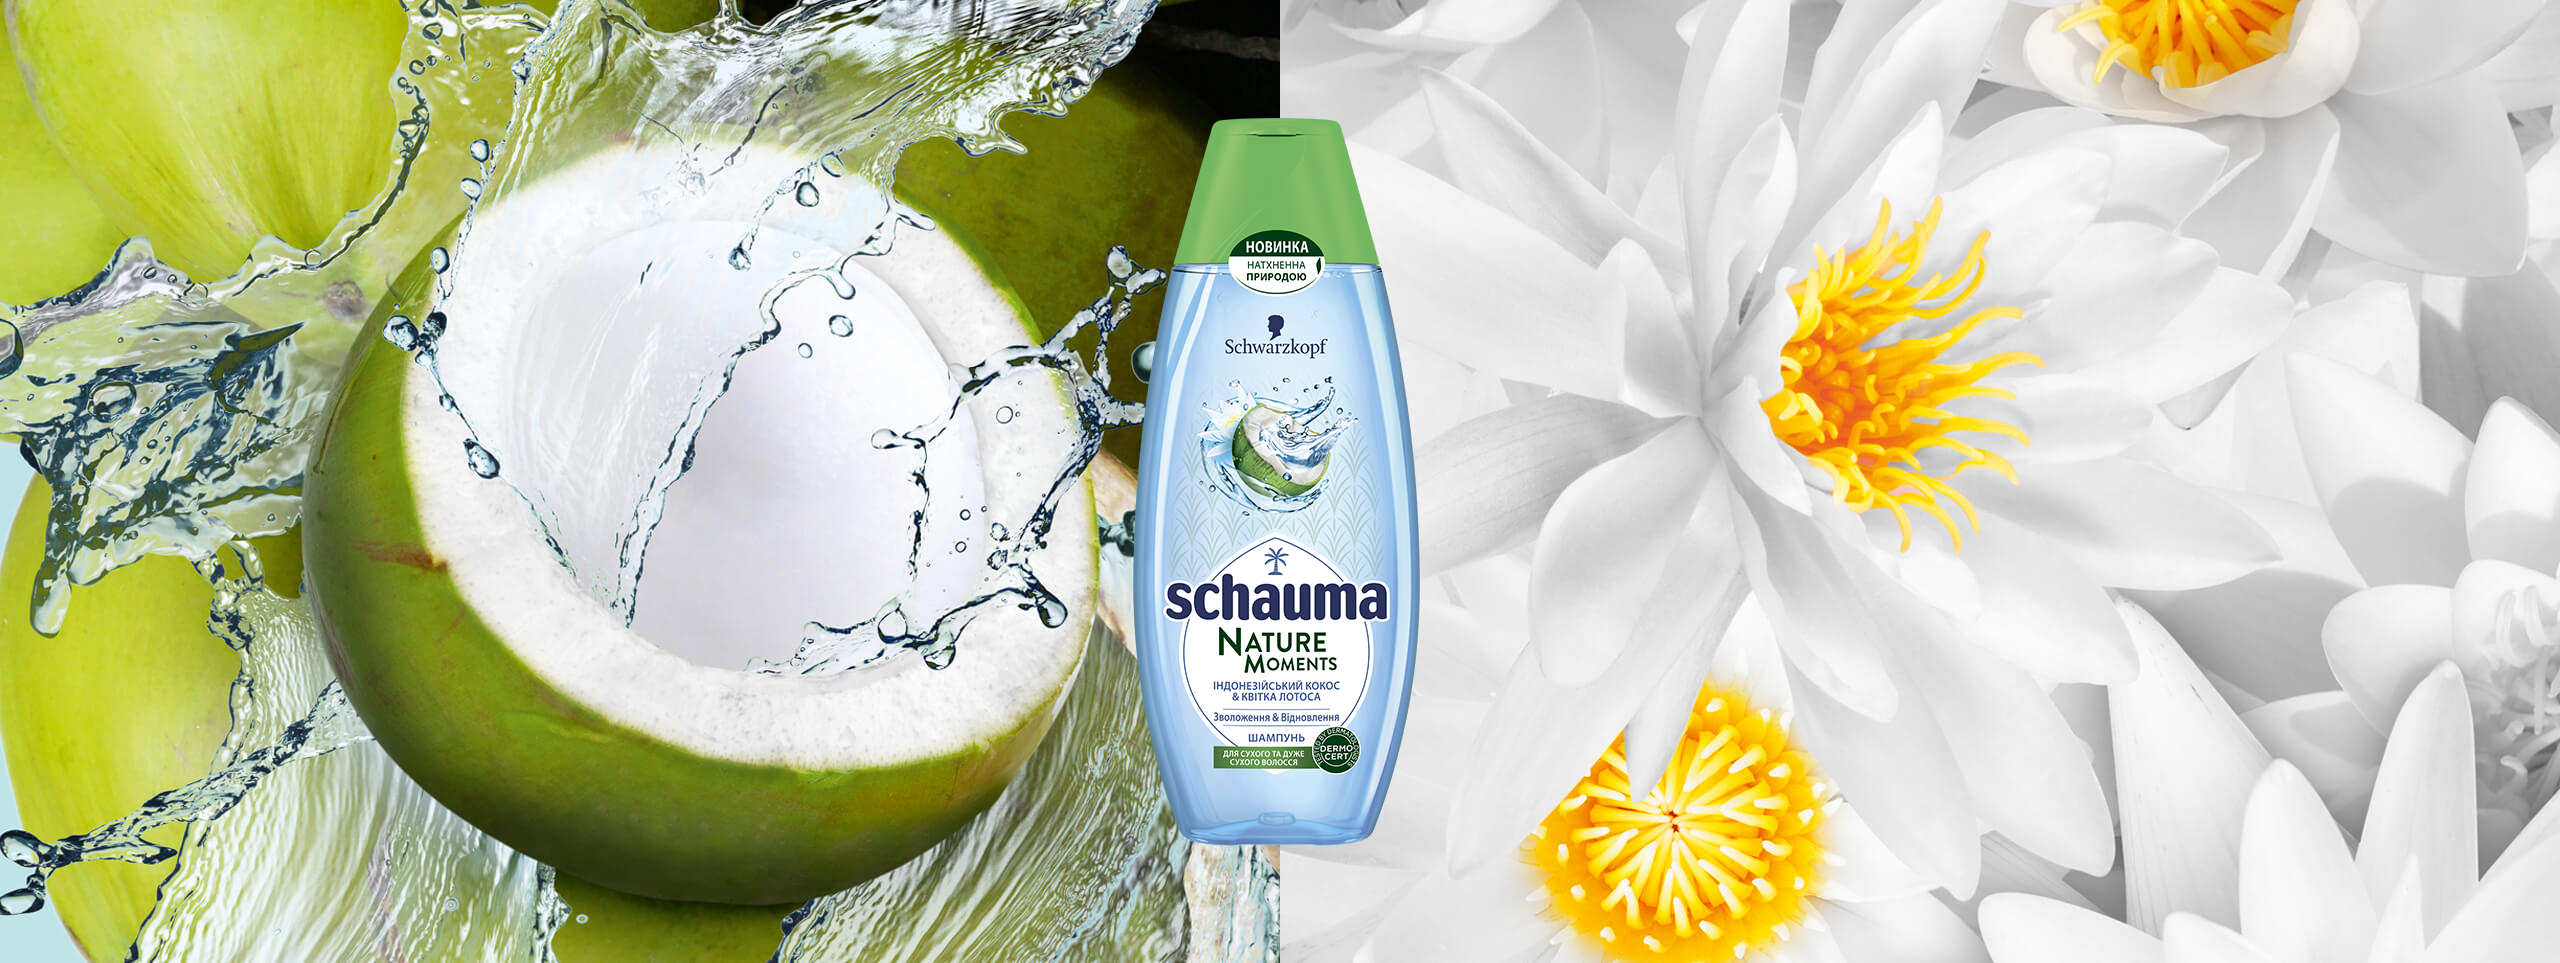 schauma_ua_nature_moments_indonesian_coconutwater_2560x963